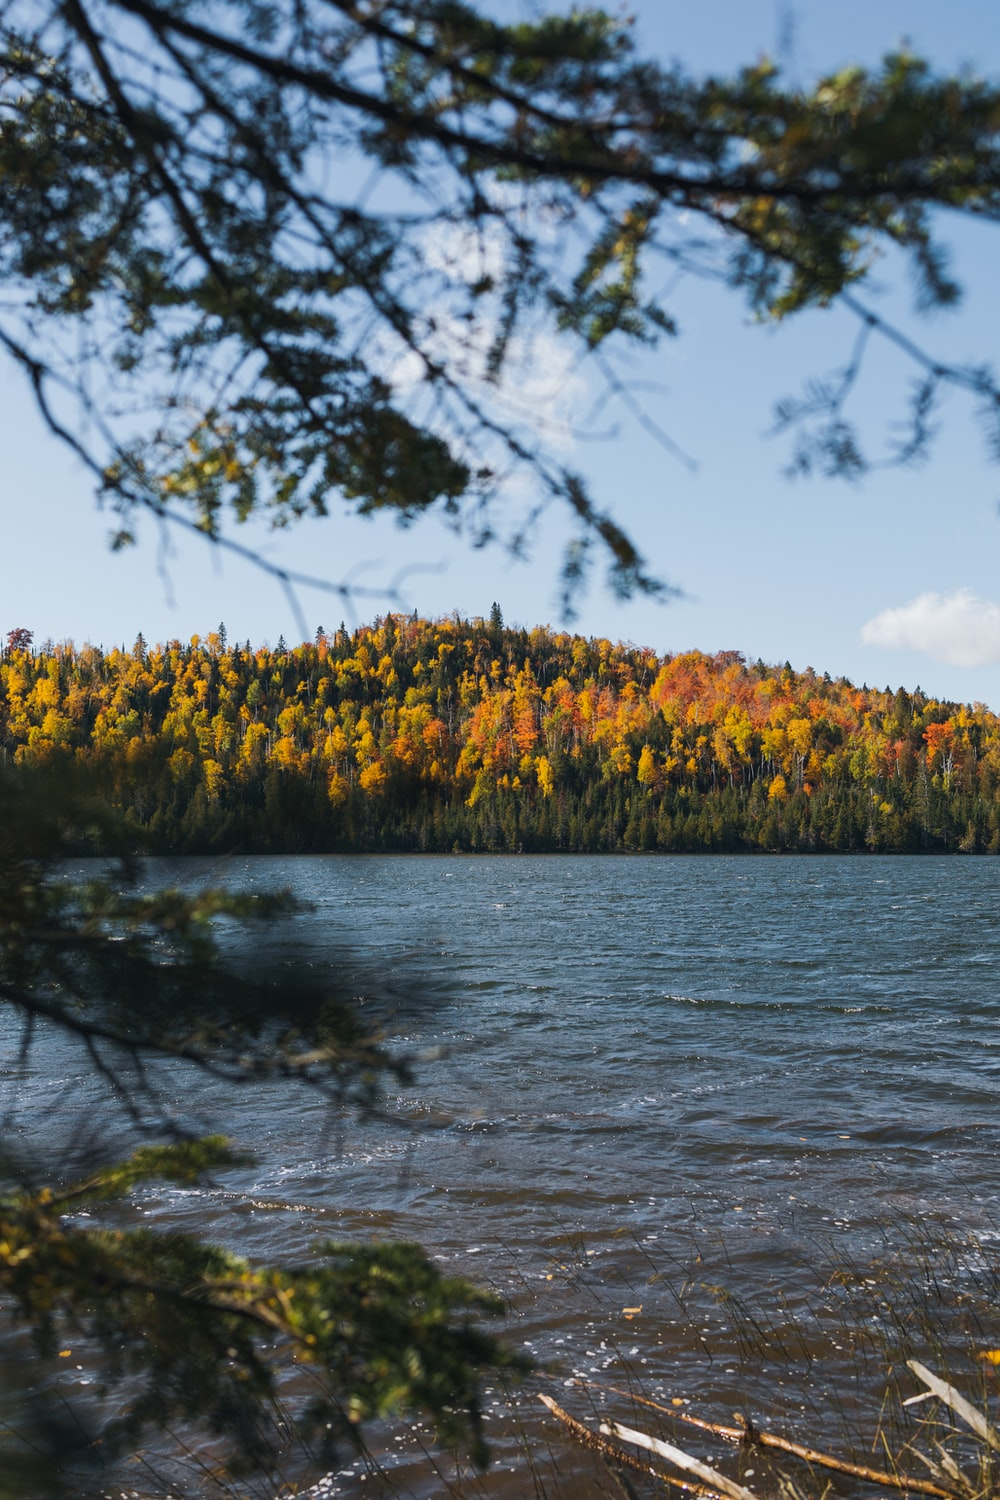 yellow and green trees beside river during daytime